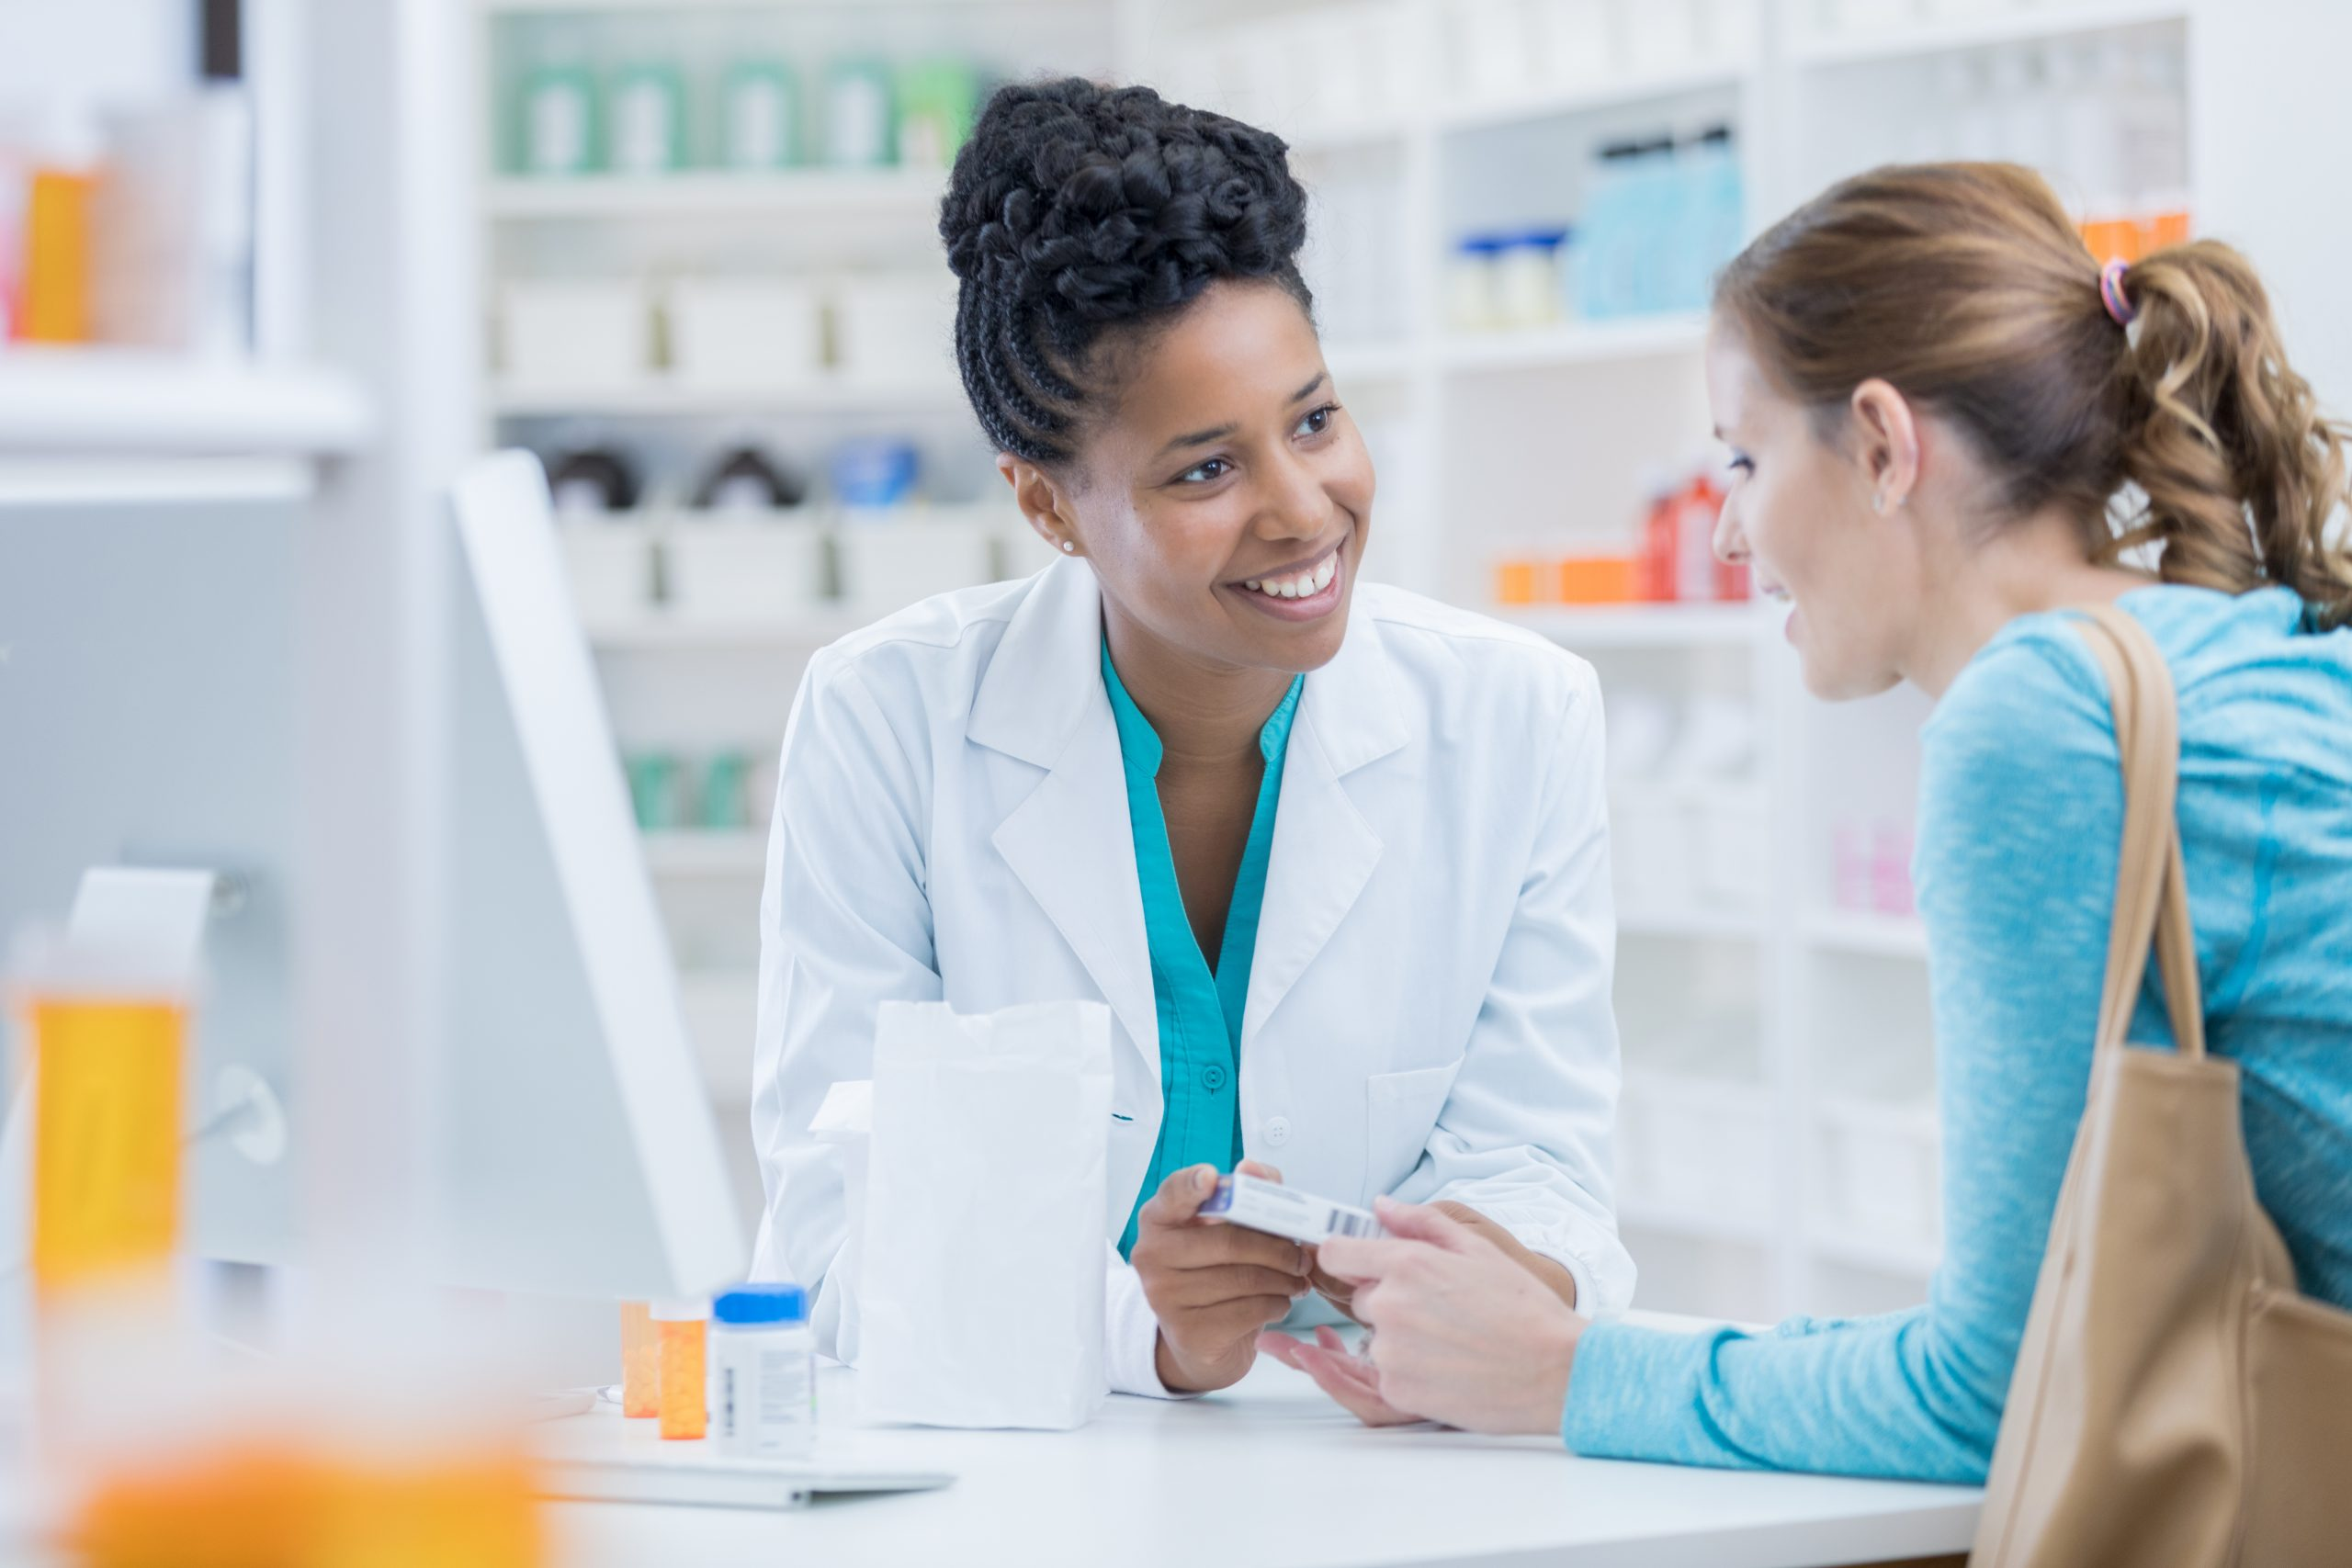 Don't have time to see your GP? 12 health problems your pharmacist can help with